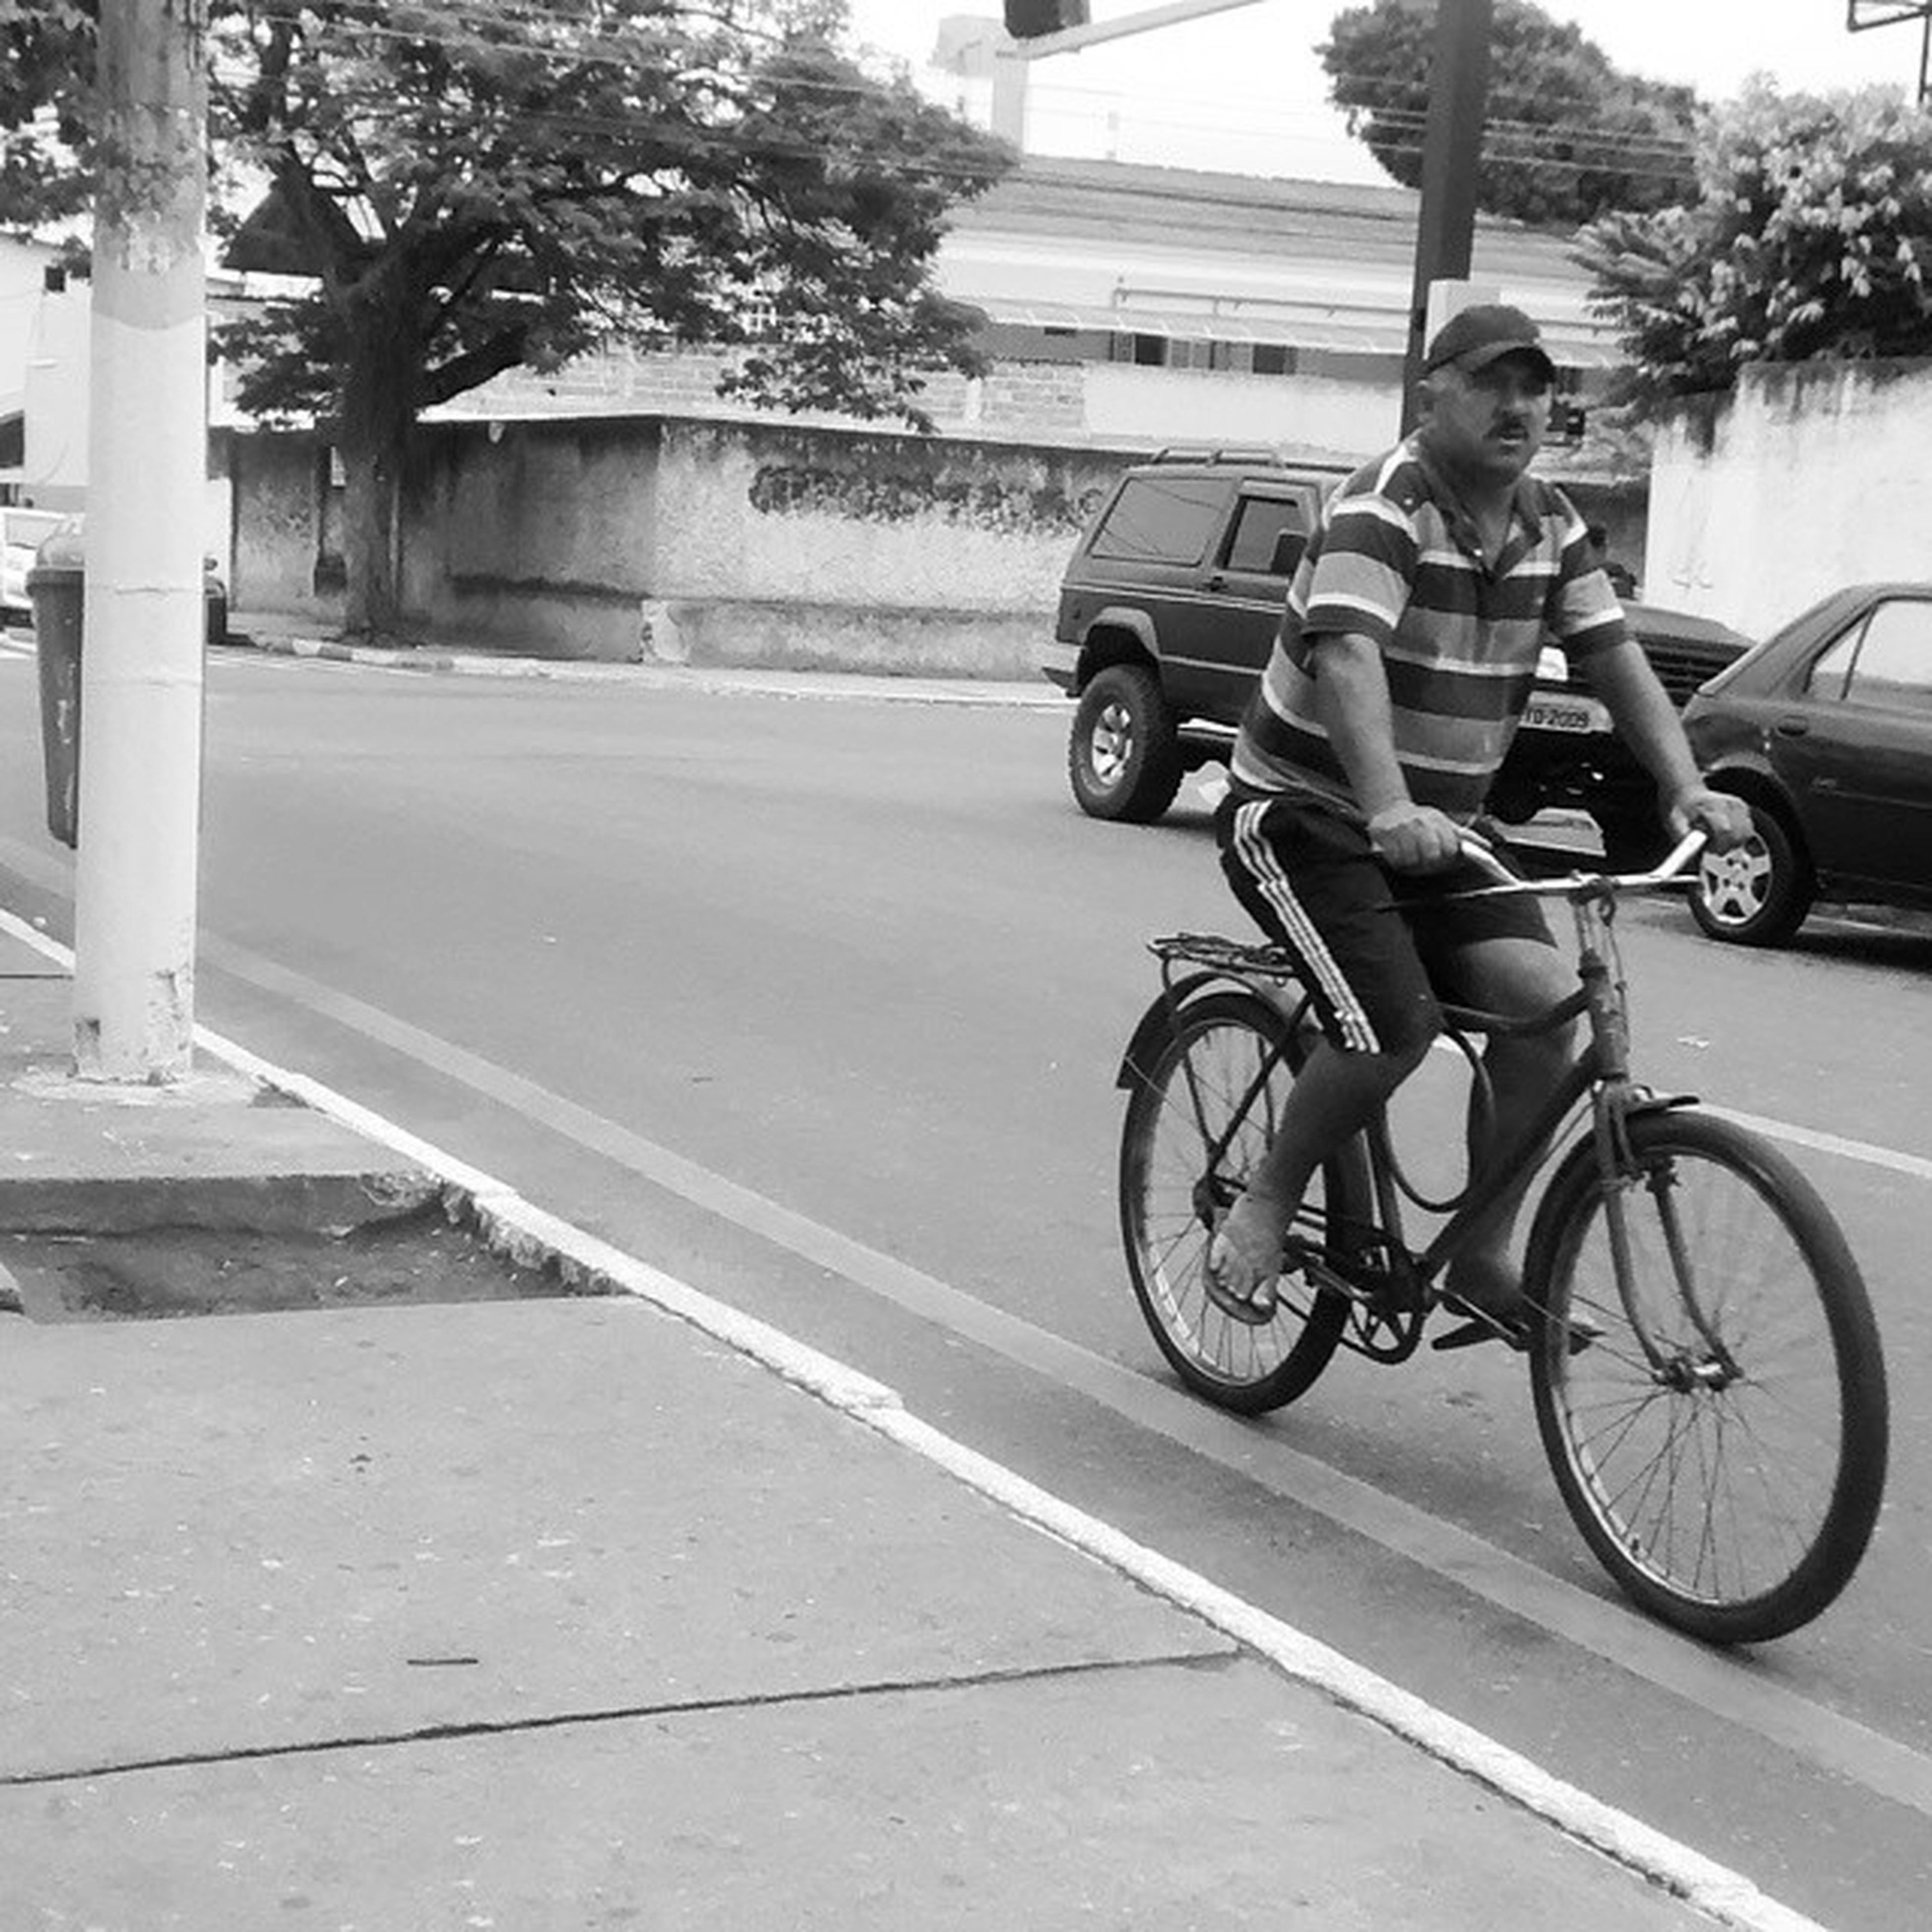 bicycle, transportation, land vehicle, mode of transport, riding, street, full length, lifestyles, stationary, cycling, road, tree, side view, leisure activity, travel, parking, on the move, parked